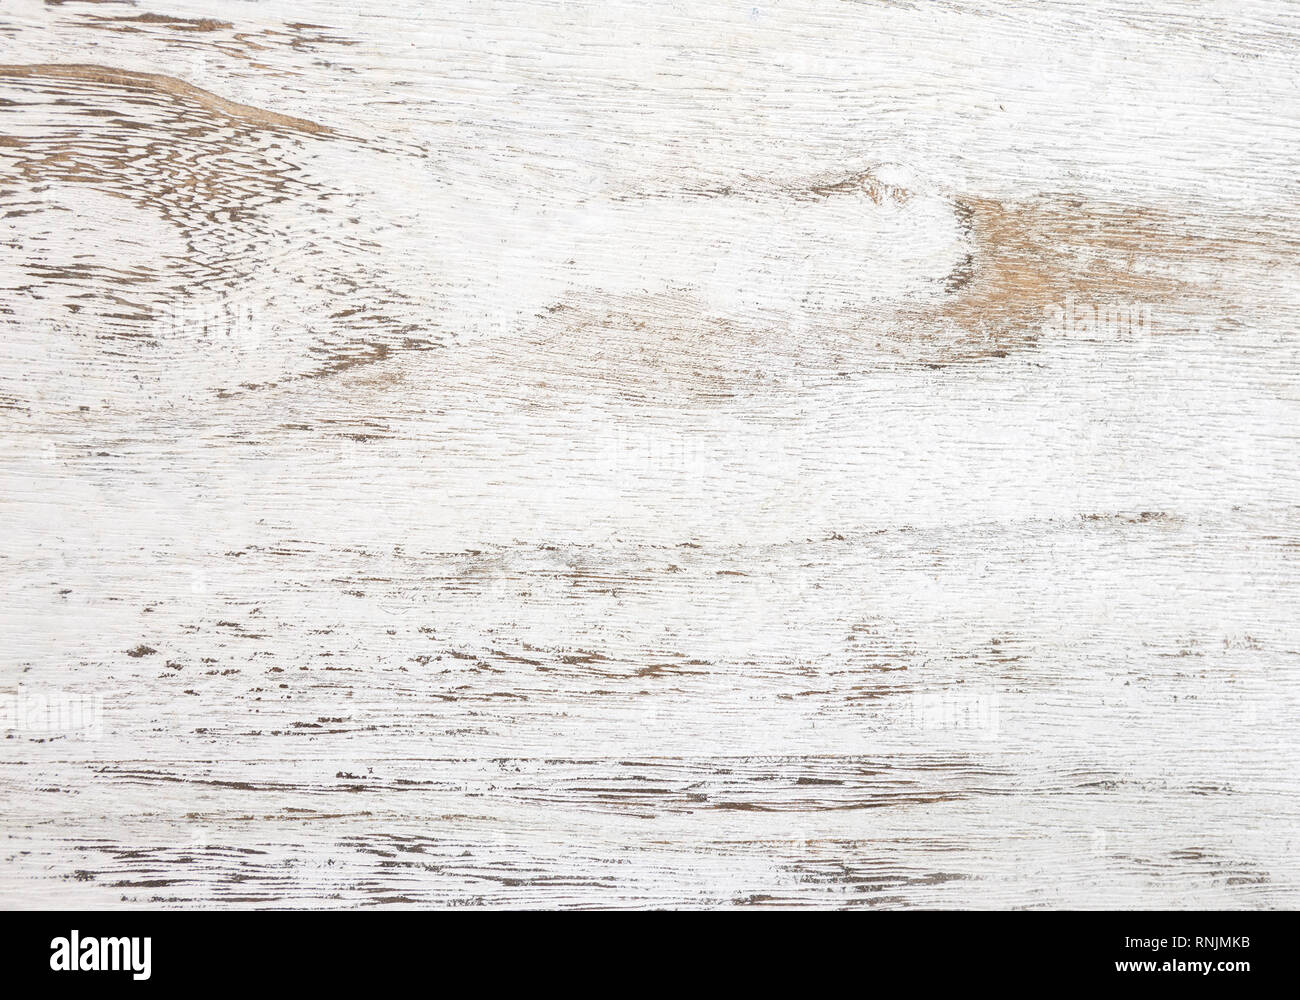 Grunge Background Peeling Paint On An Old Wooden Table White Wooden Texture For Background Top View Stock Photo Alamy